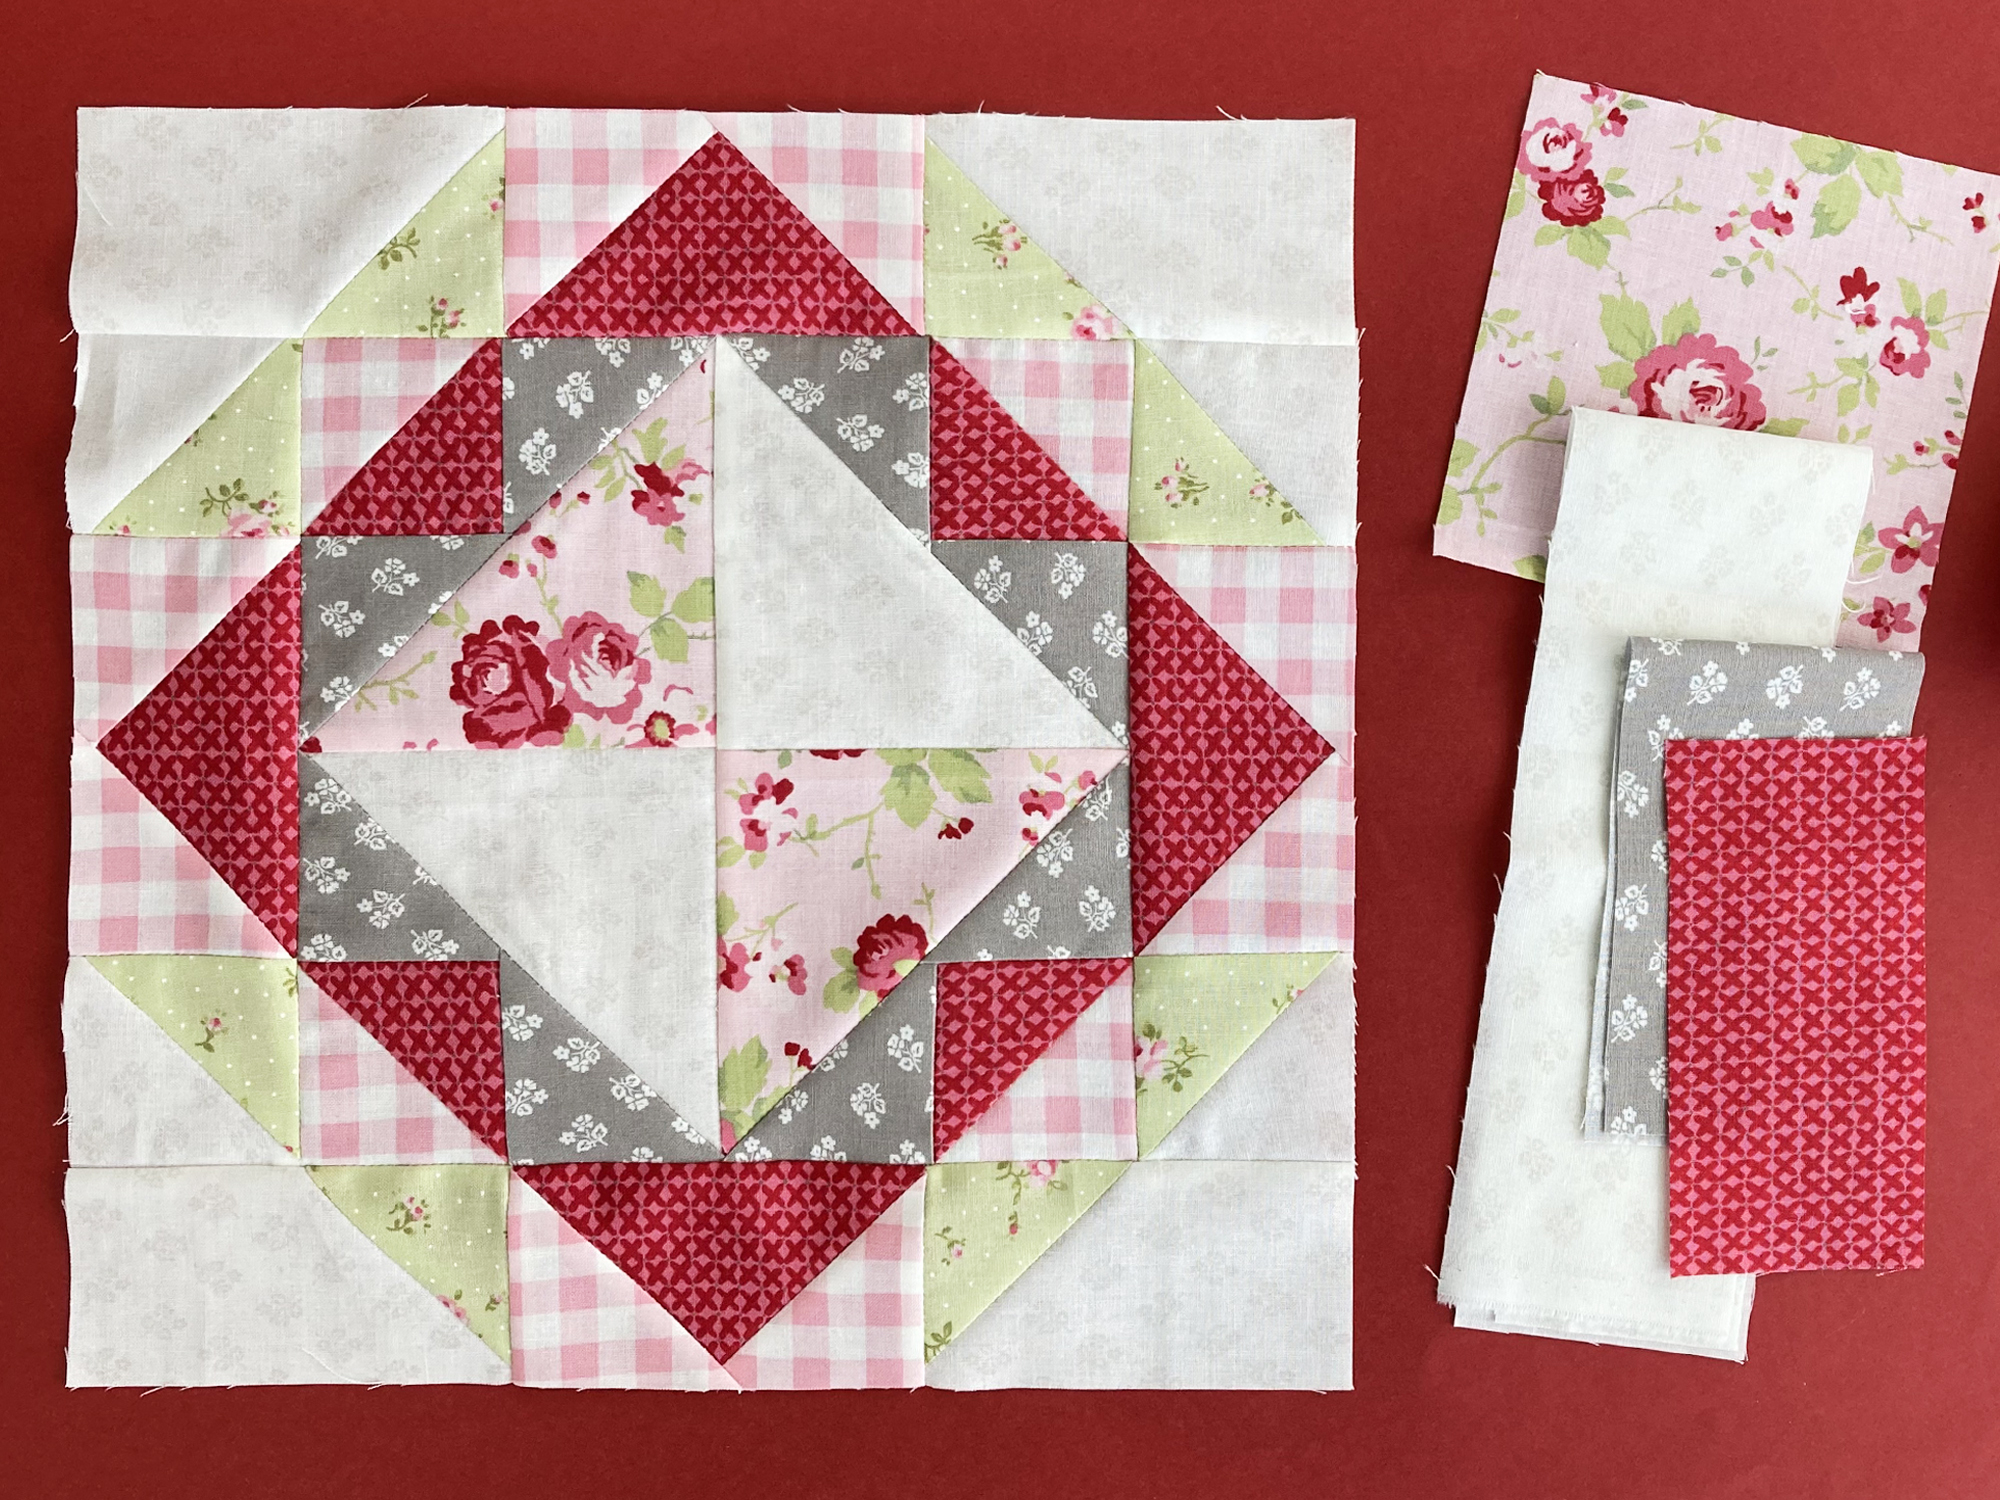 Red, pink, green, and gray floral quilt block with fabrics to the side.